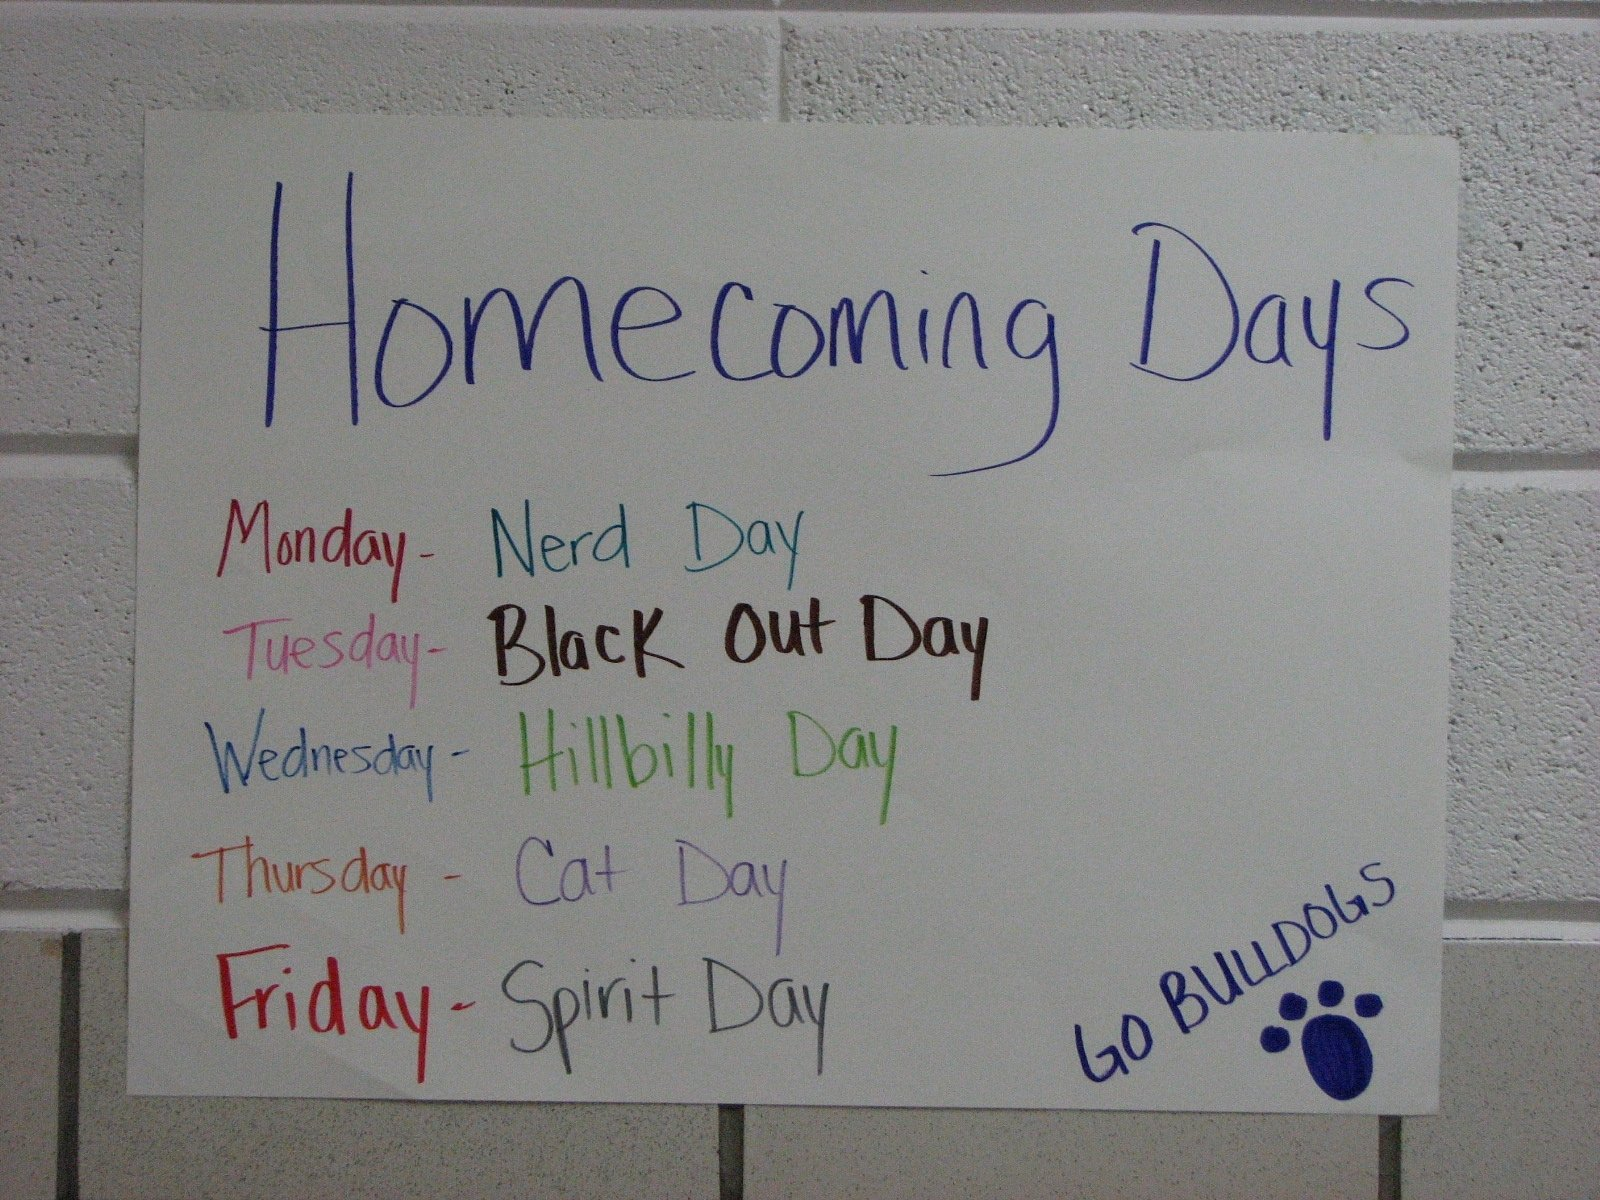 10 Gorgeous Homecoming Dress Up Day Ideas mr mallorys stuff homecoming dress up days next week 1 2021